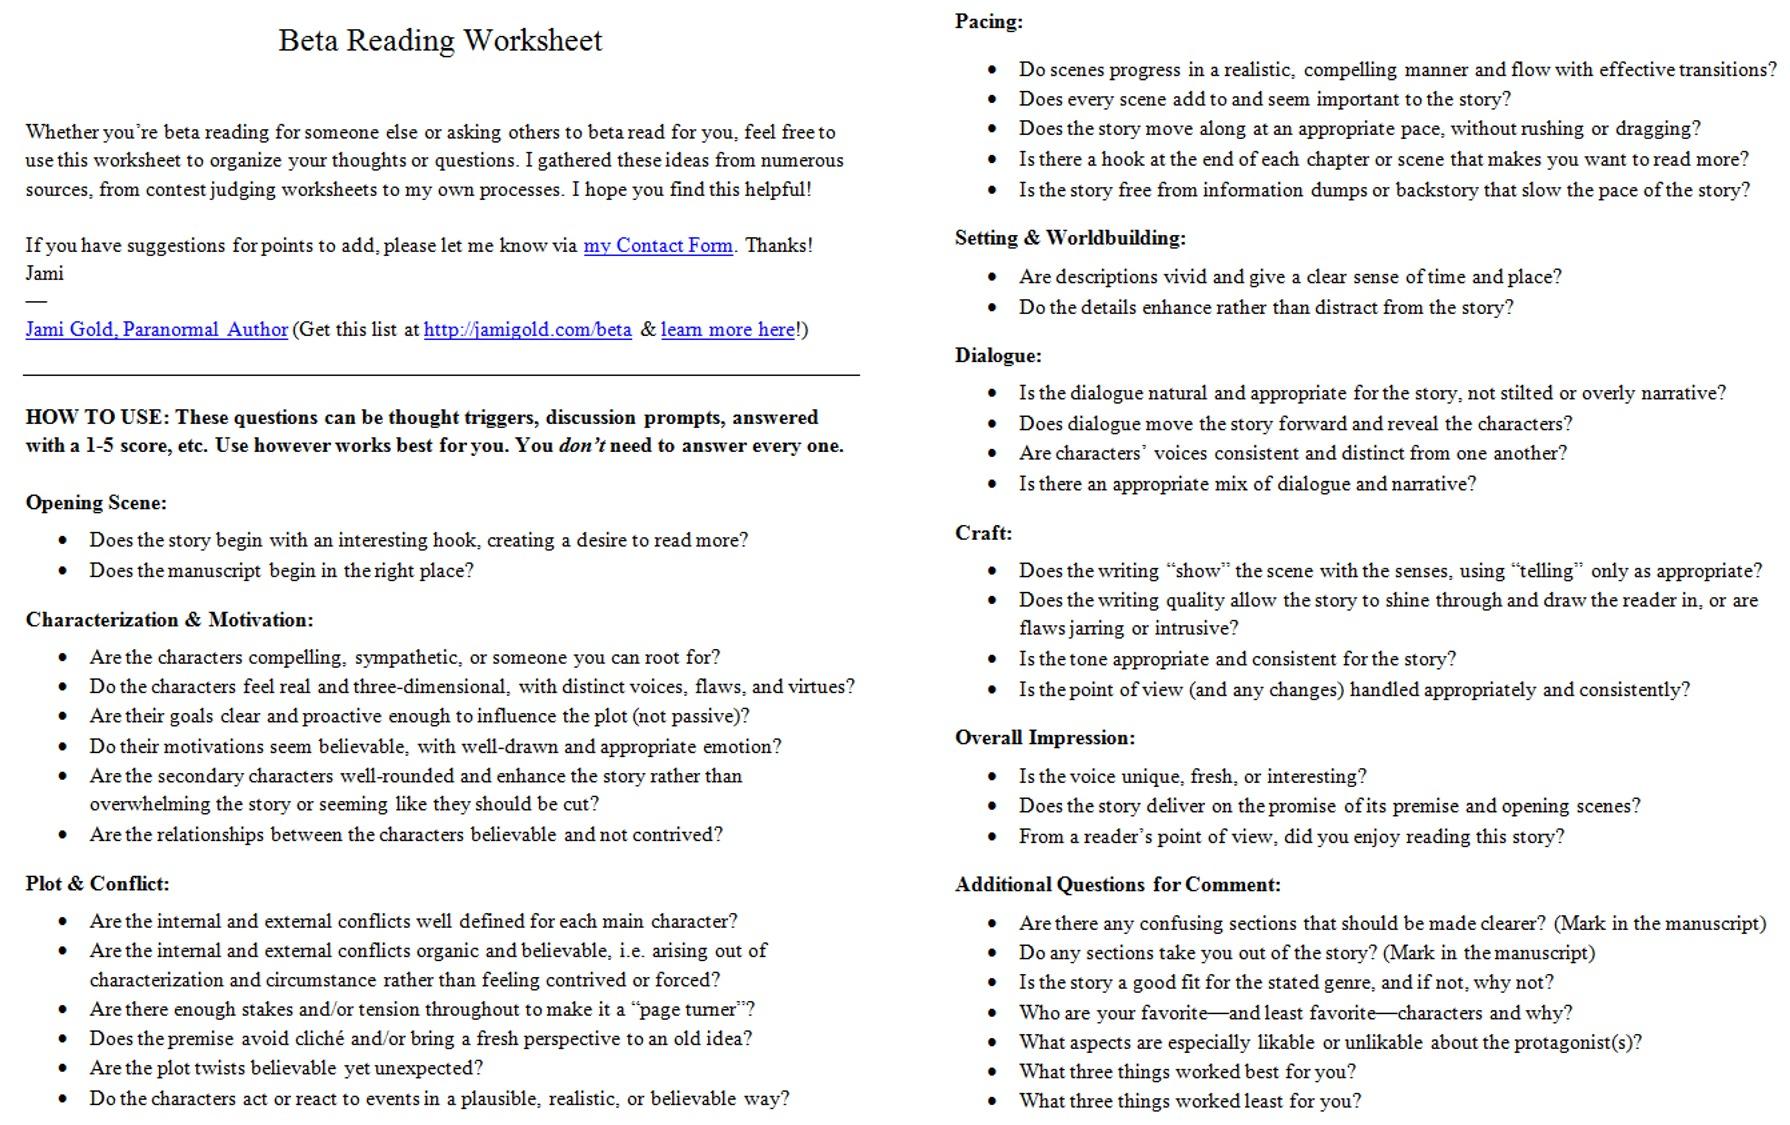 Proatmealus  Terrific Worksheets For Writers  Jami Gold Paranormal Author With Lovable Screen Shot Of The Twopage Beta Reading Worksheet With Beauteous Irregular Past Tense Verb Worksheet Also Ancient Egypt Timeline Worksheet In Addition Distance And Midpoint Worksheets And Percent Of A Number Worksheet Word Problems As Well As Addition Worksheets Online Additionally Tangram Puzzle Worksheets From Jamigoldcom With Proatmealus  Lovable Worksheets For Writers  Jami Gold Paranormal Author With Beauteous Screen Shot Of The Twopage Beta Reading Worksheet And Terrific Irregular Past Tense Verb Worksheet Also Ancient Egypt Timeline Worksheet In Addition Distance And Midpoint Worksheets From Jamigoldcom